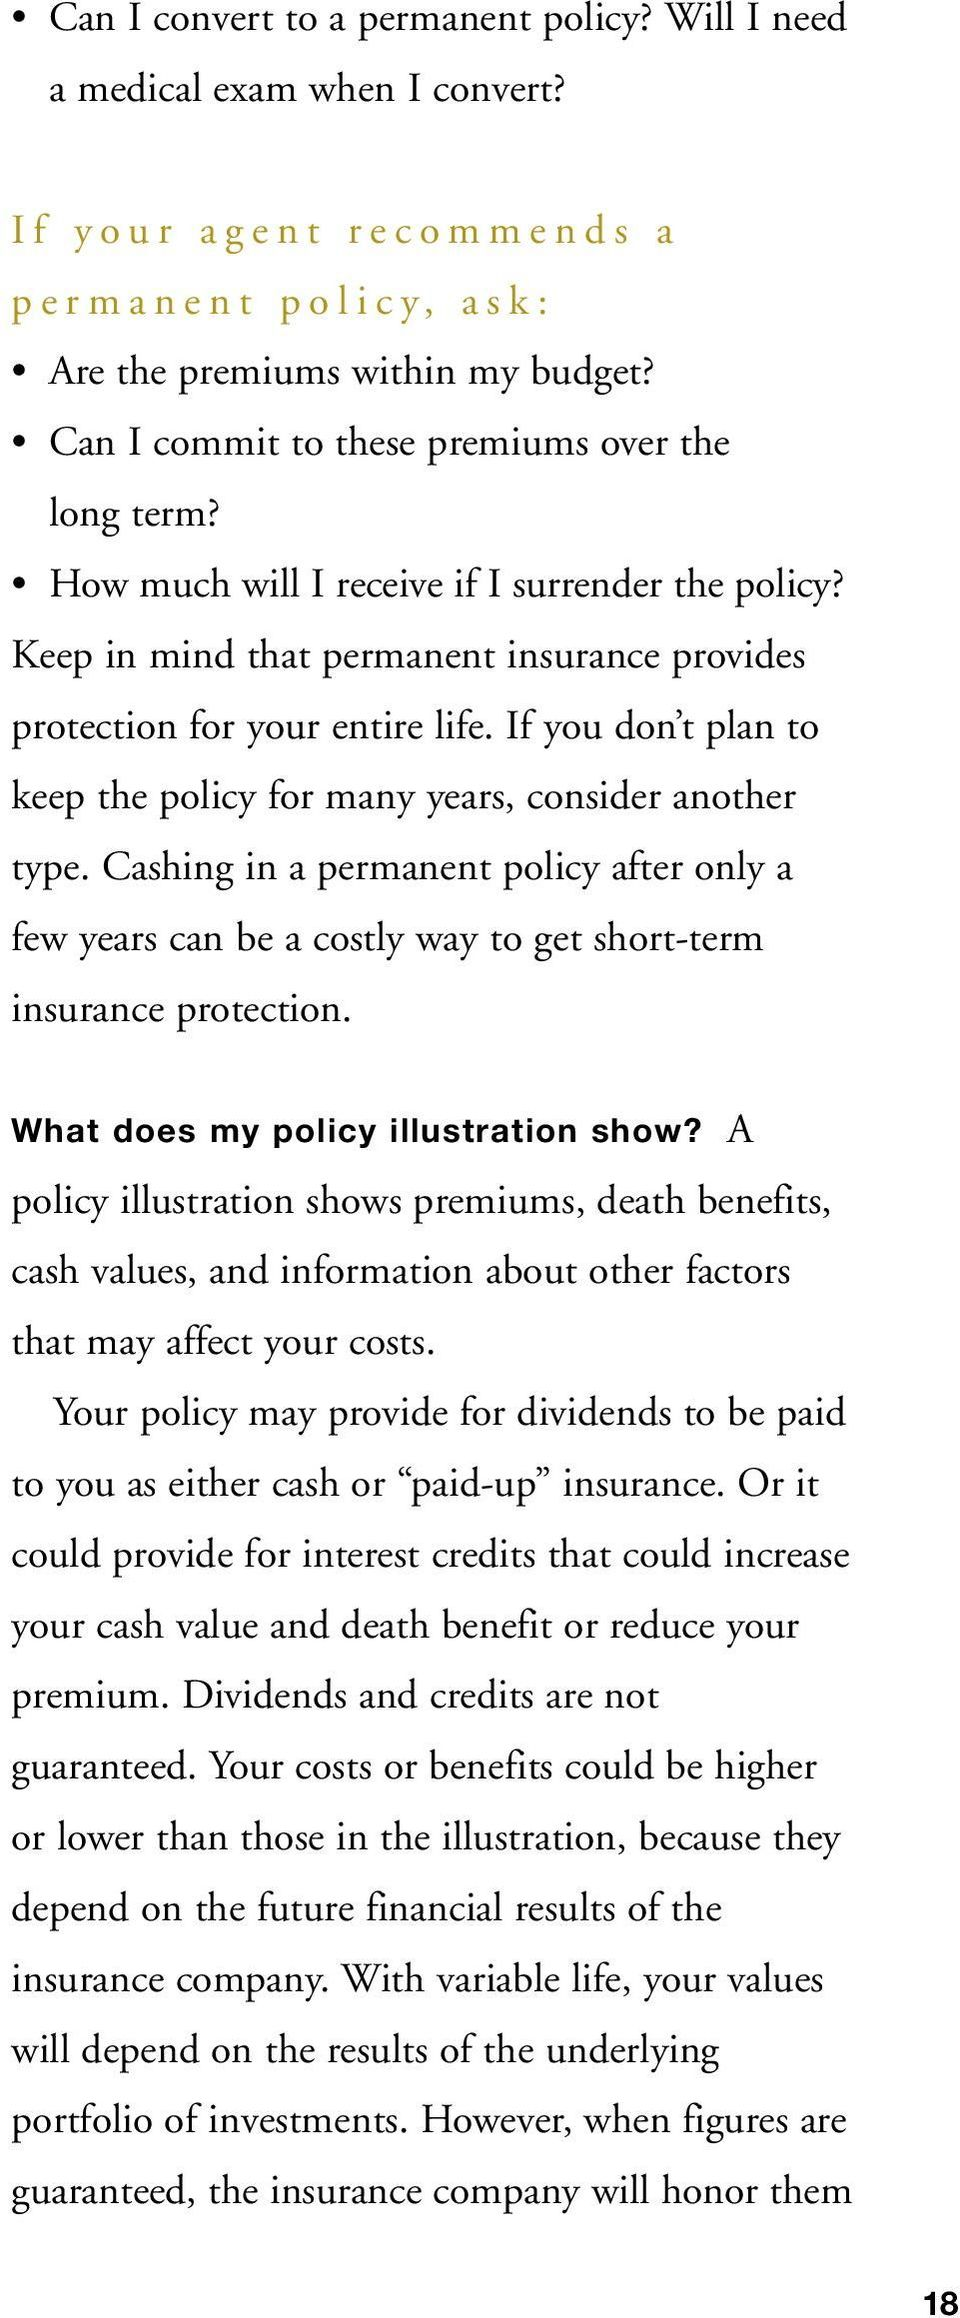 If you don t plan to keep the policy for many years, consider another type. Cashing in a permanent policy after only a few years can be a costly way to get short-term insurance protection.